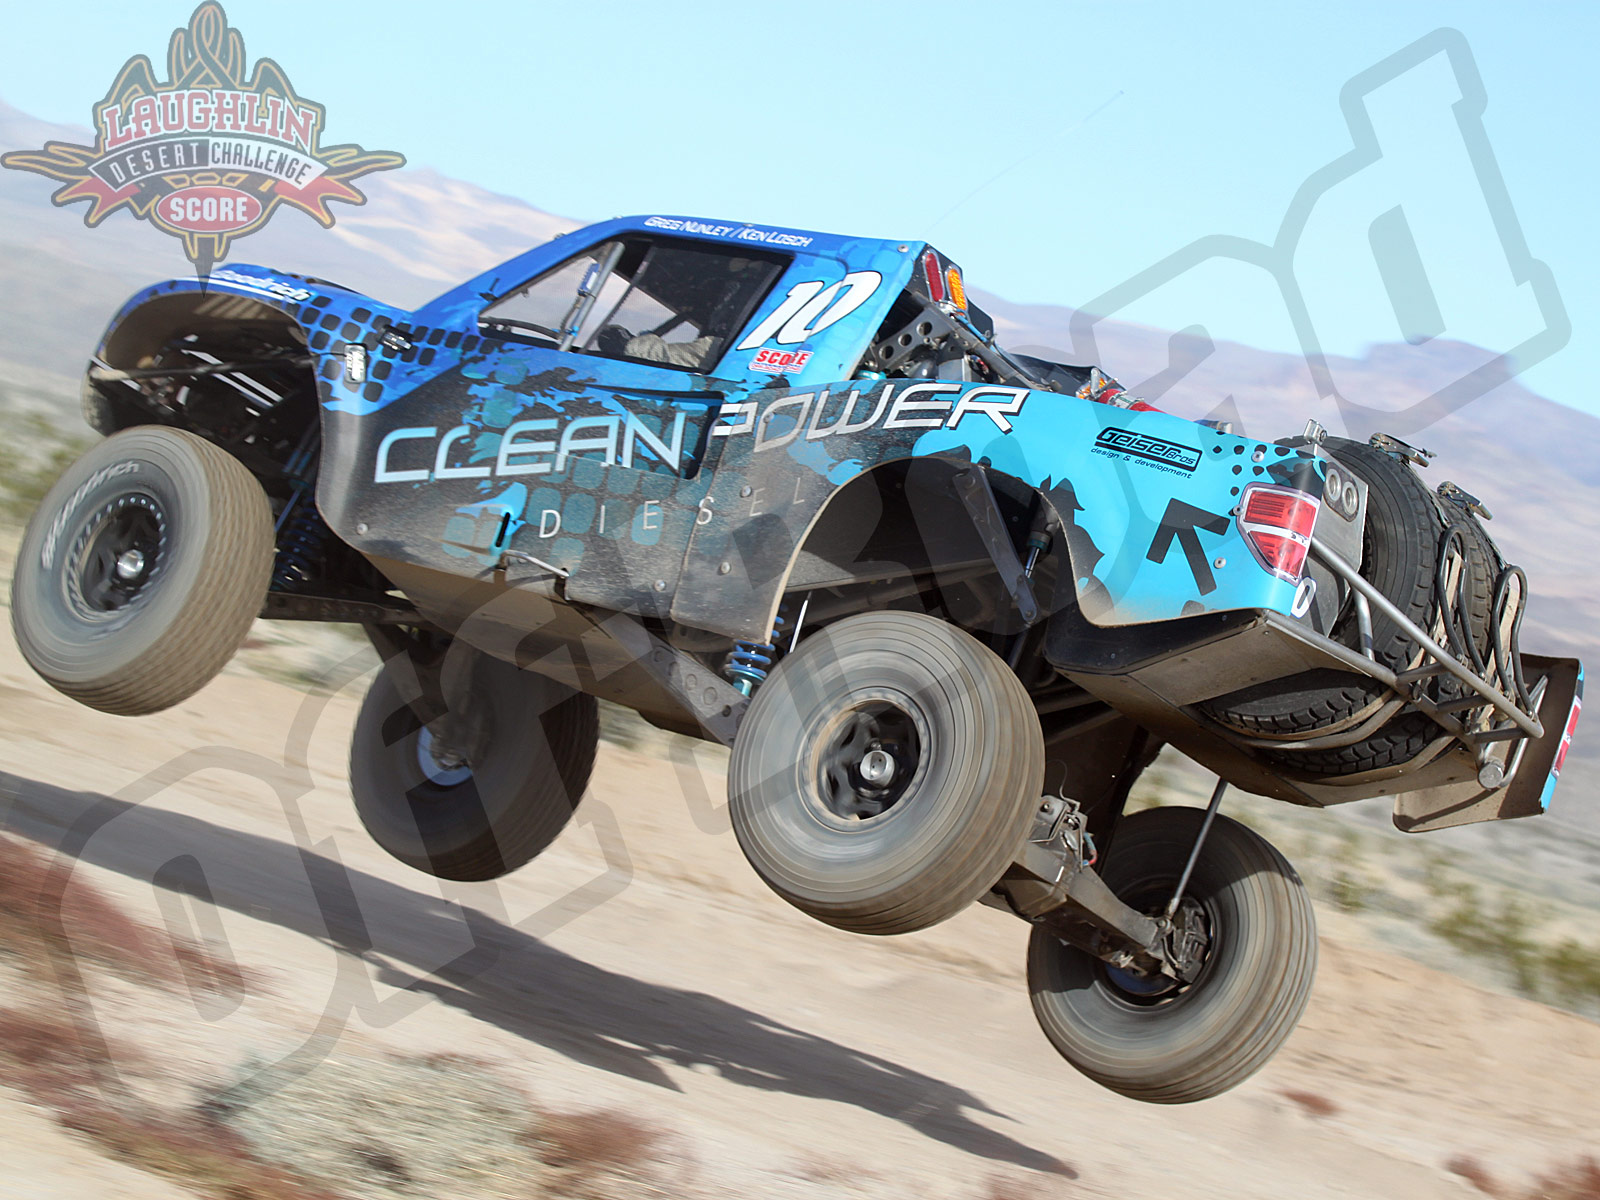 030311or 6816+2011 score laughlin desert challenge+trophy trucks sunday